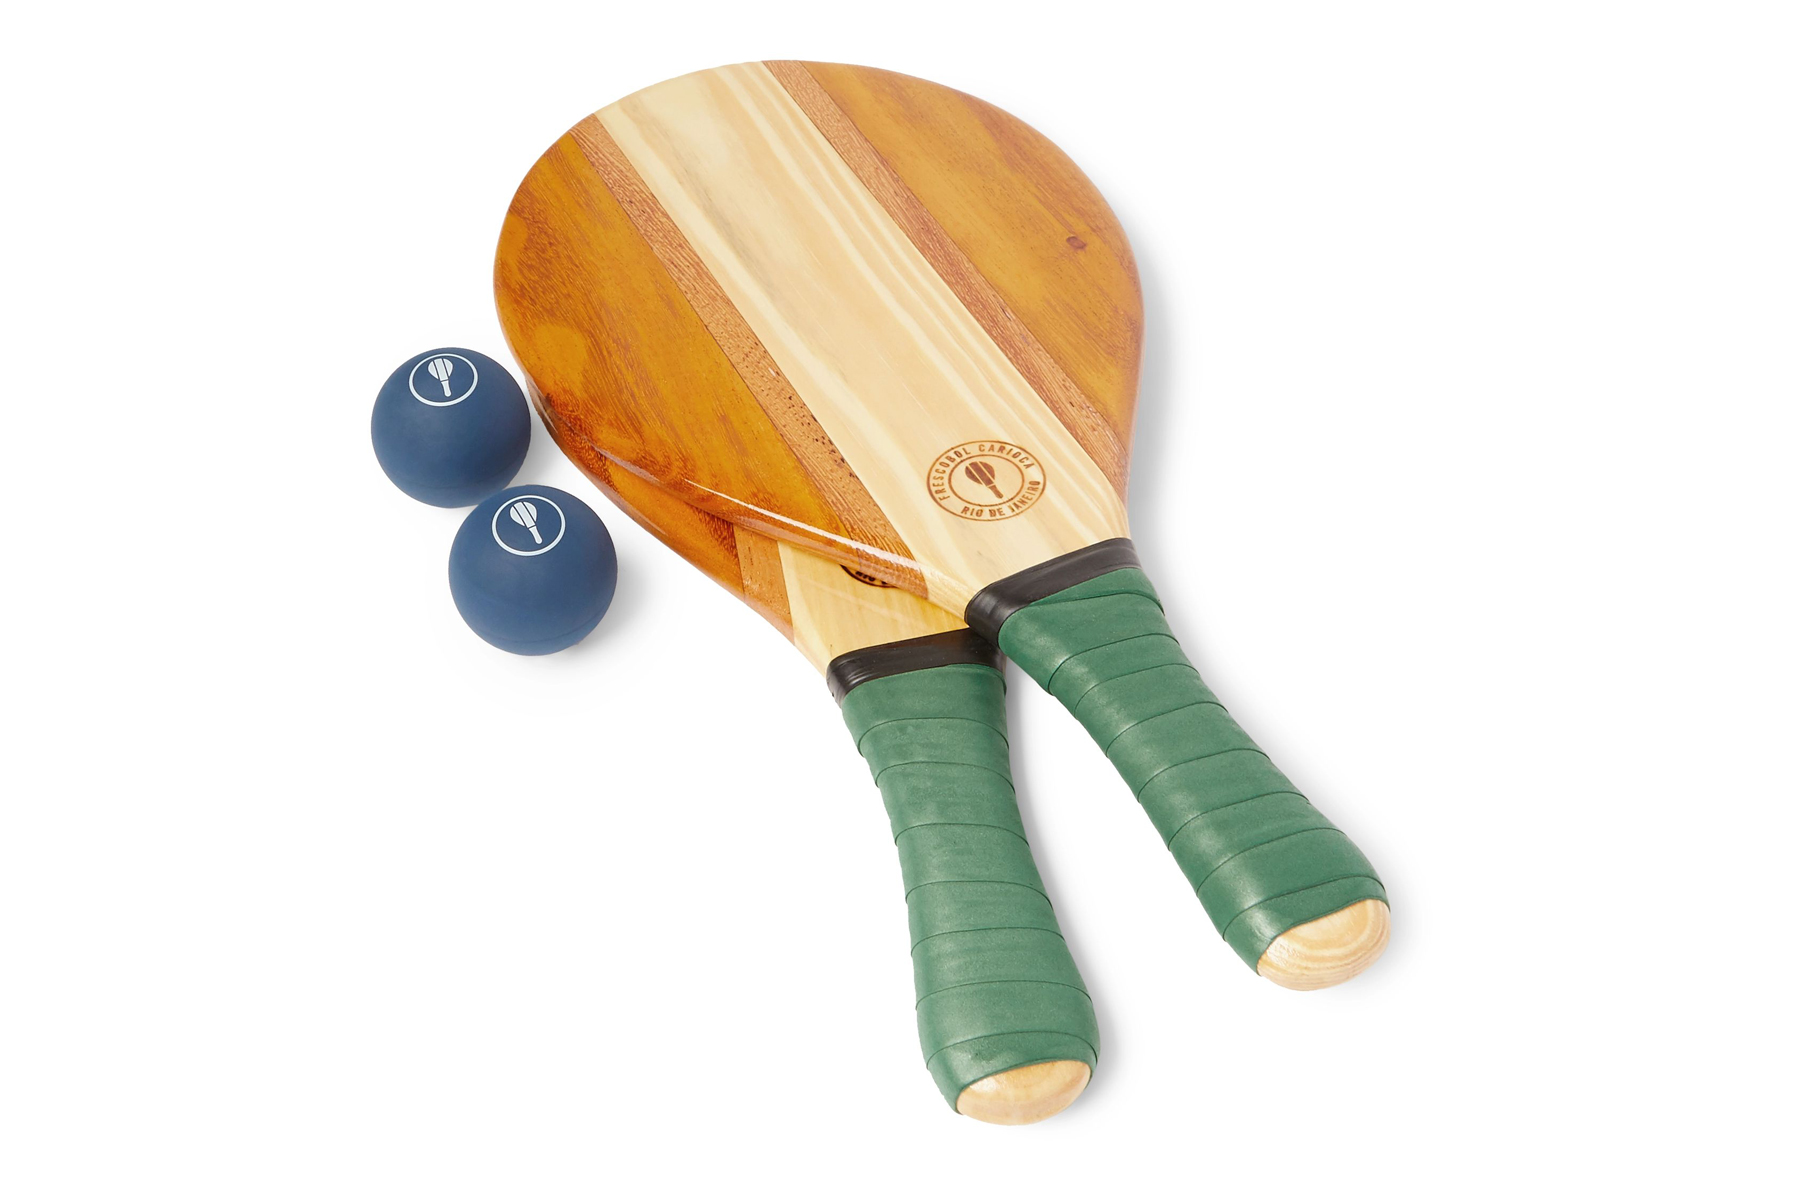 Wooden paddle with two small blue balls